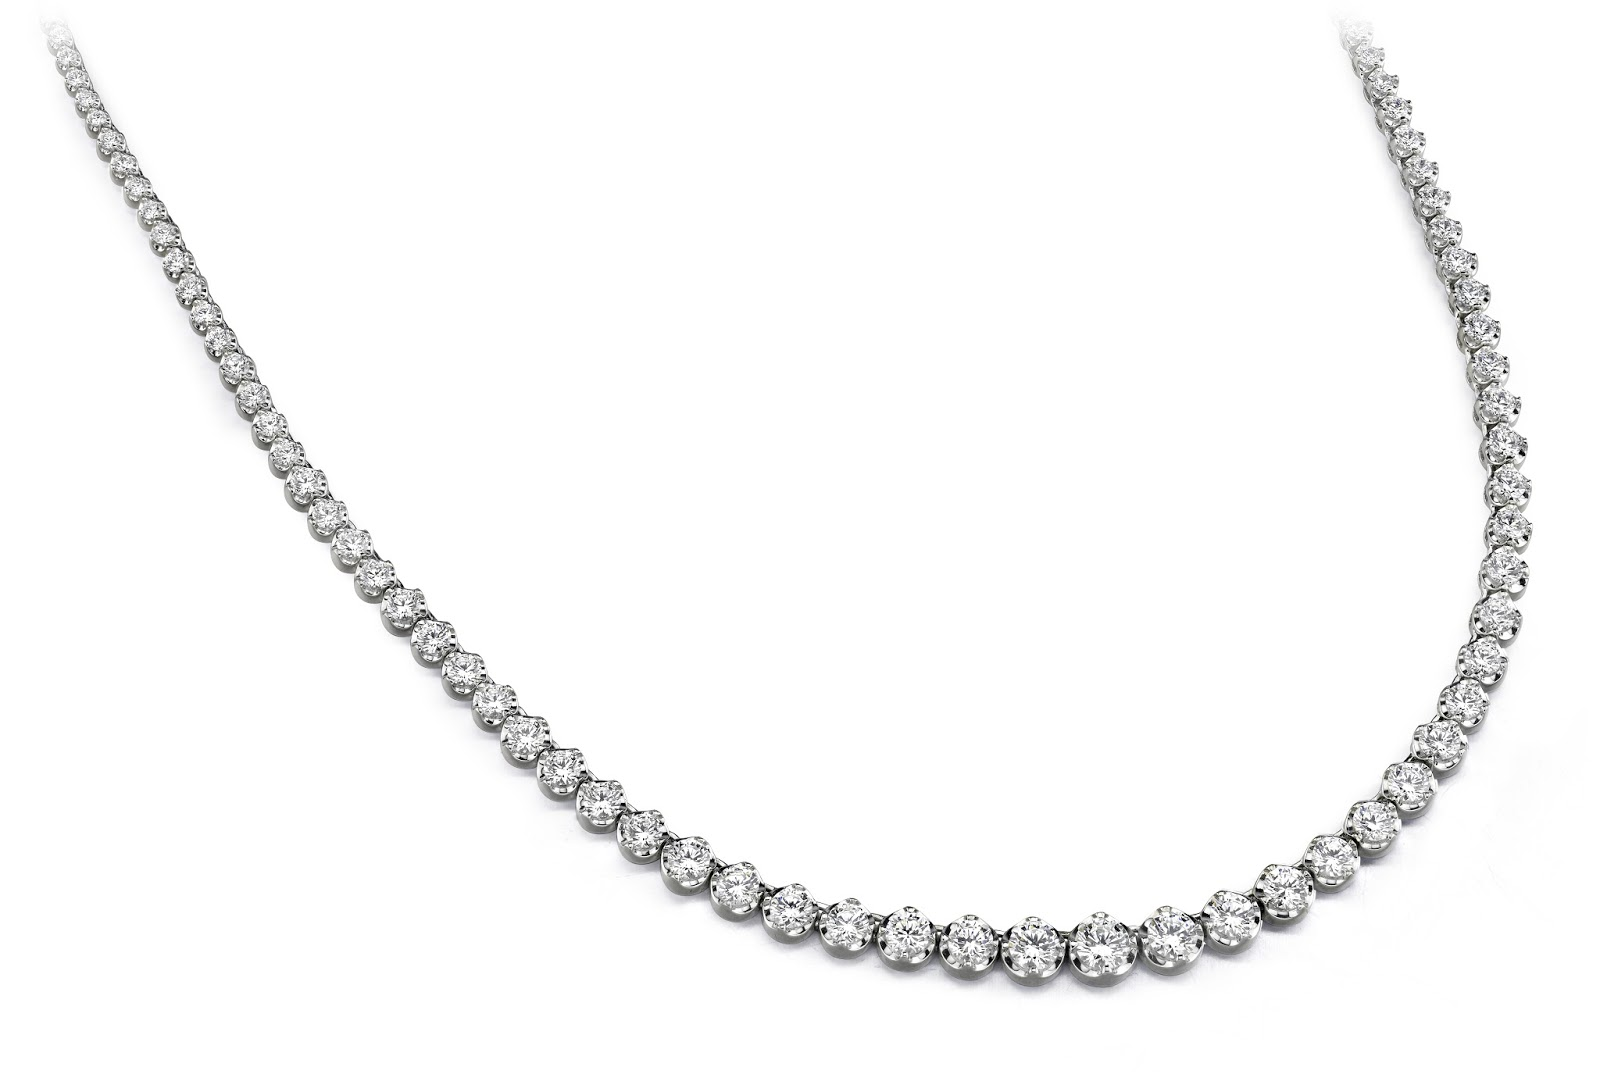 Perfect Diamond Strand Necklace from Anjolee Jewelry